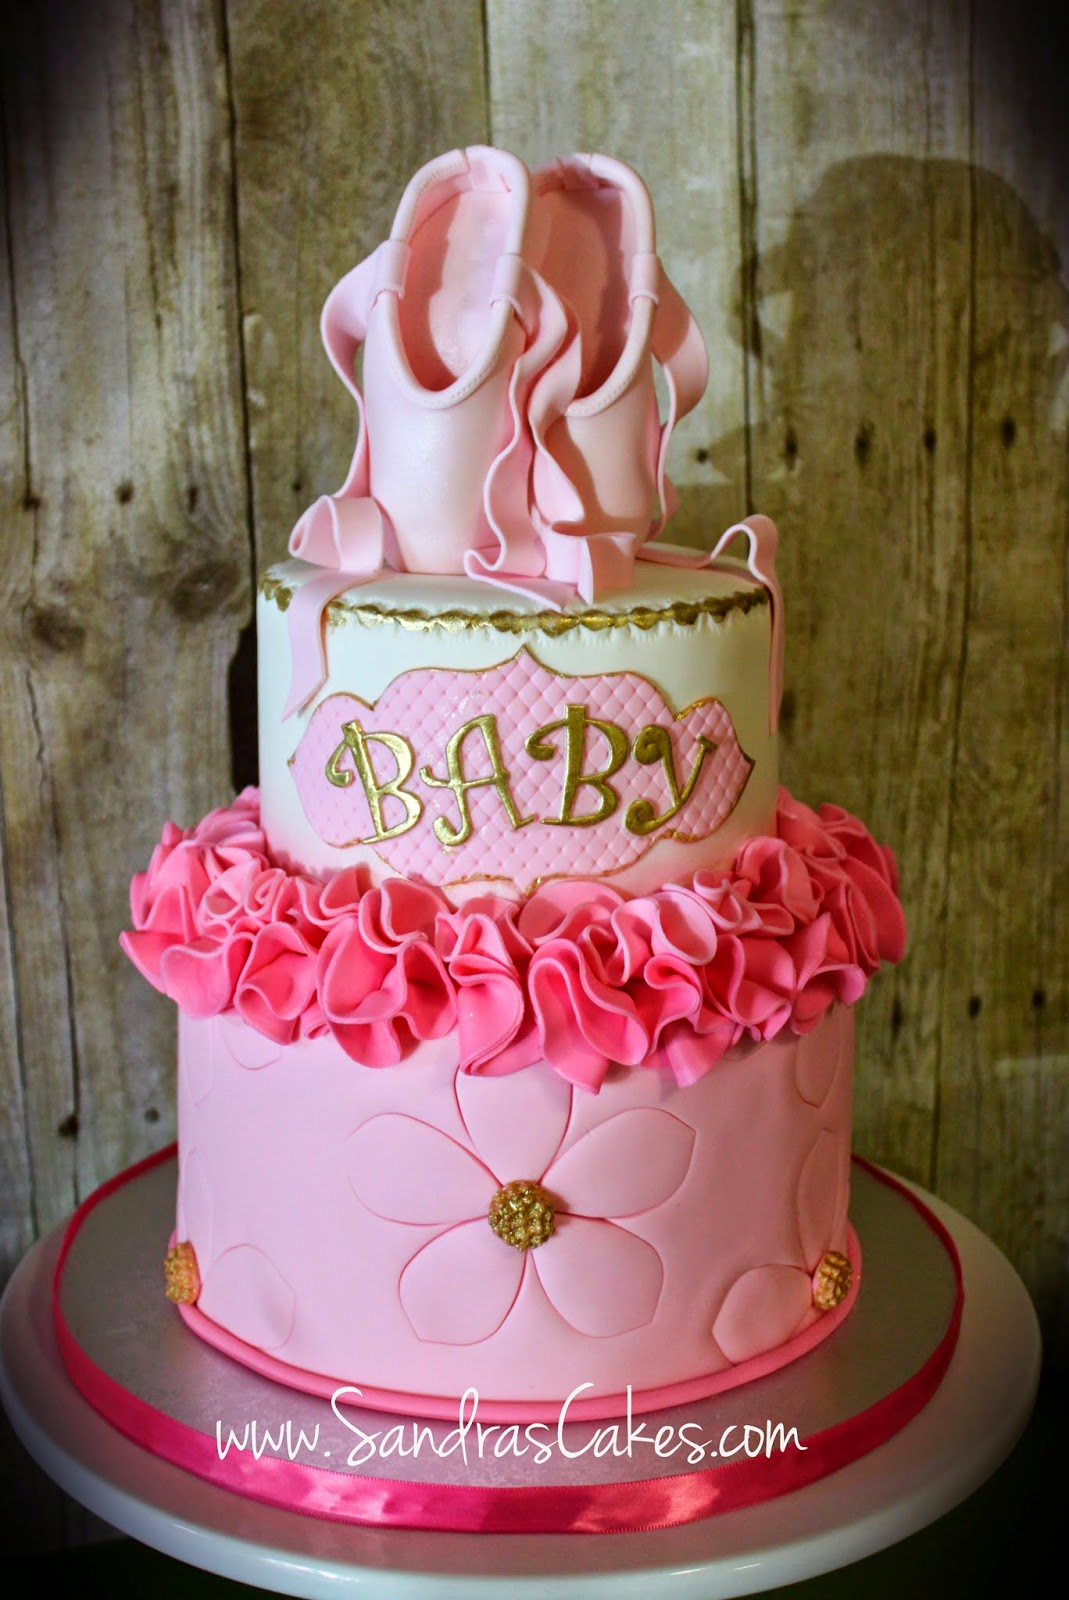 sandra 39 s cakes ballerina themed baby shower cake